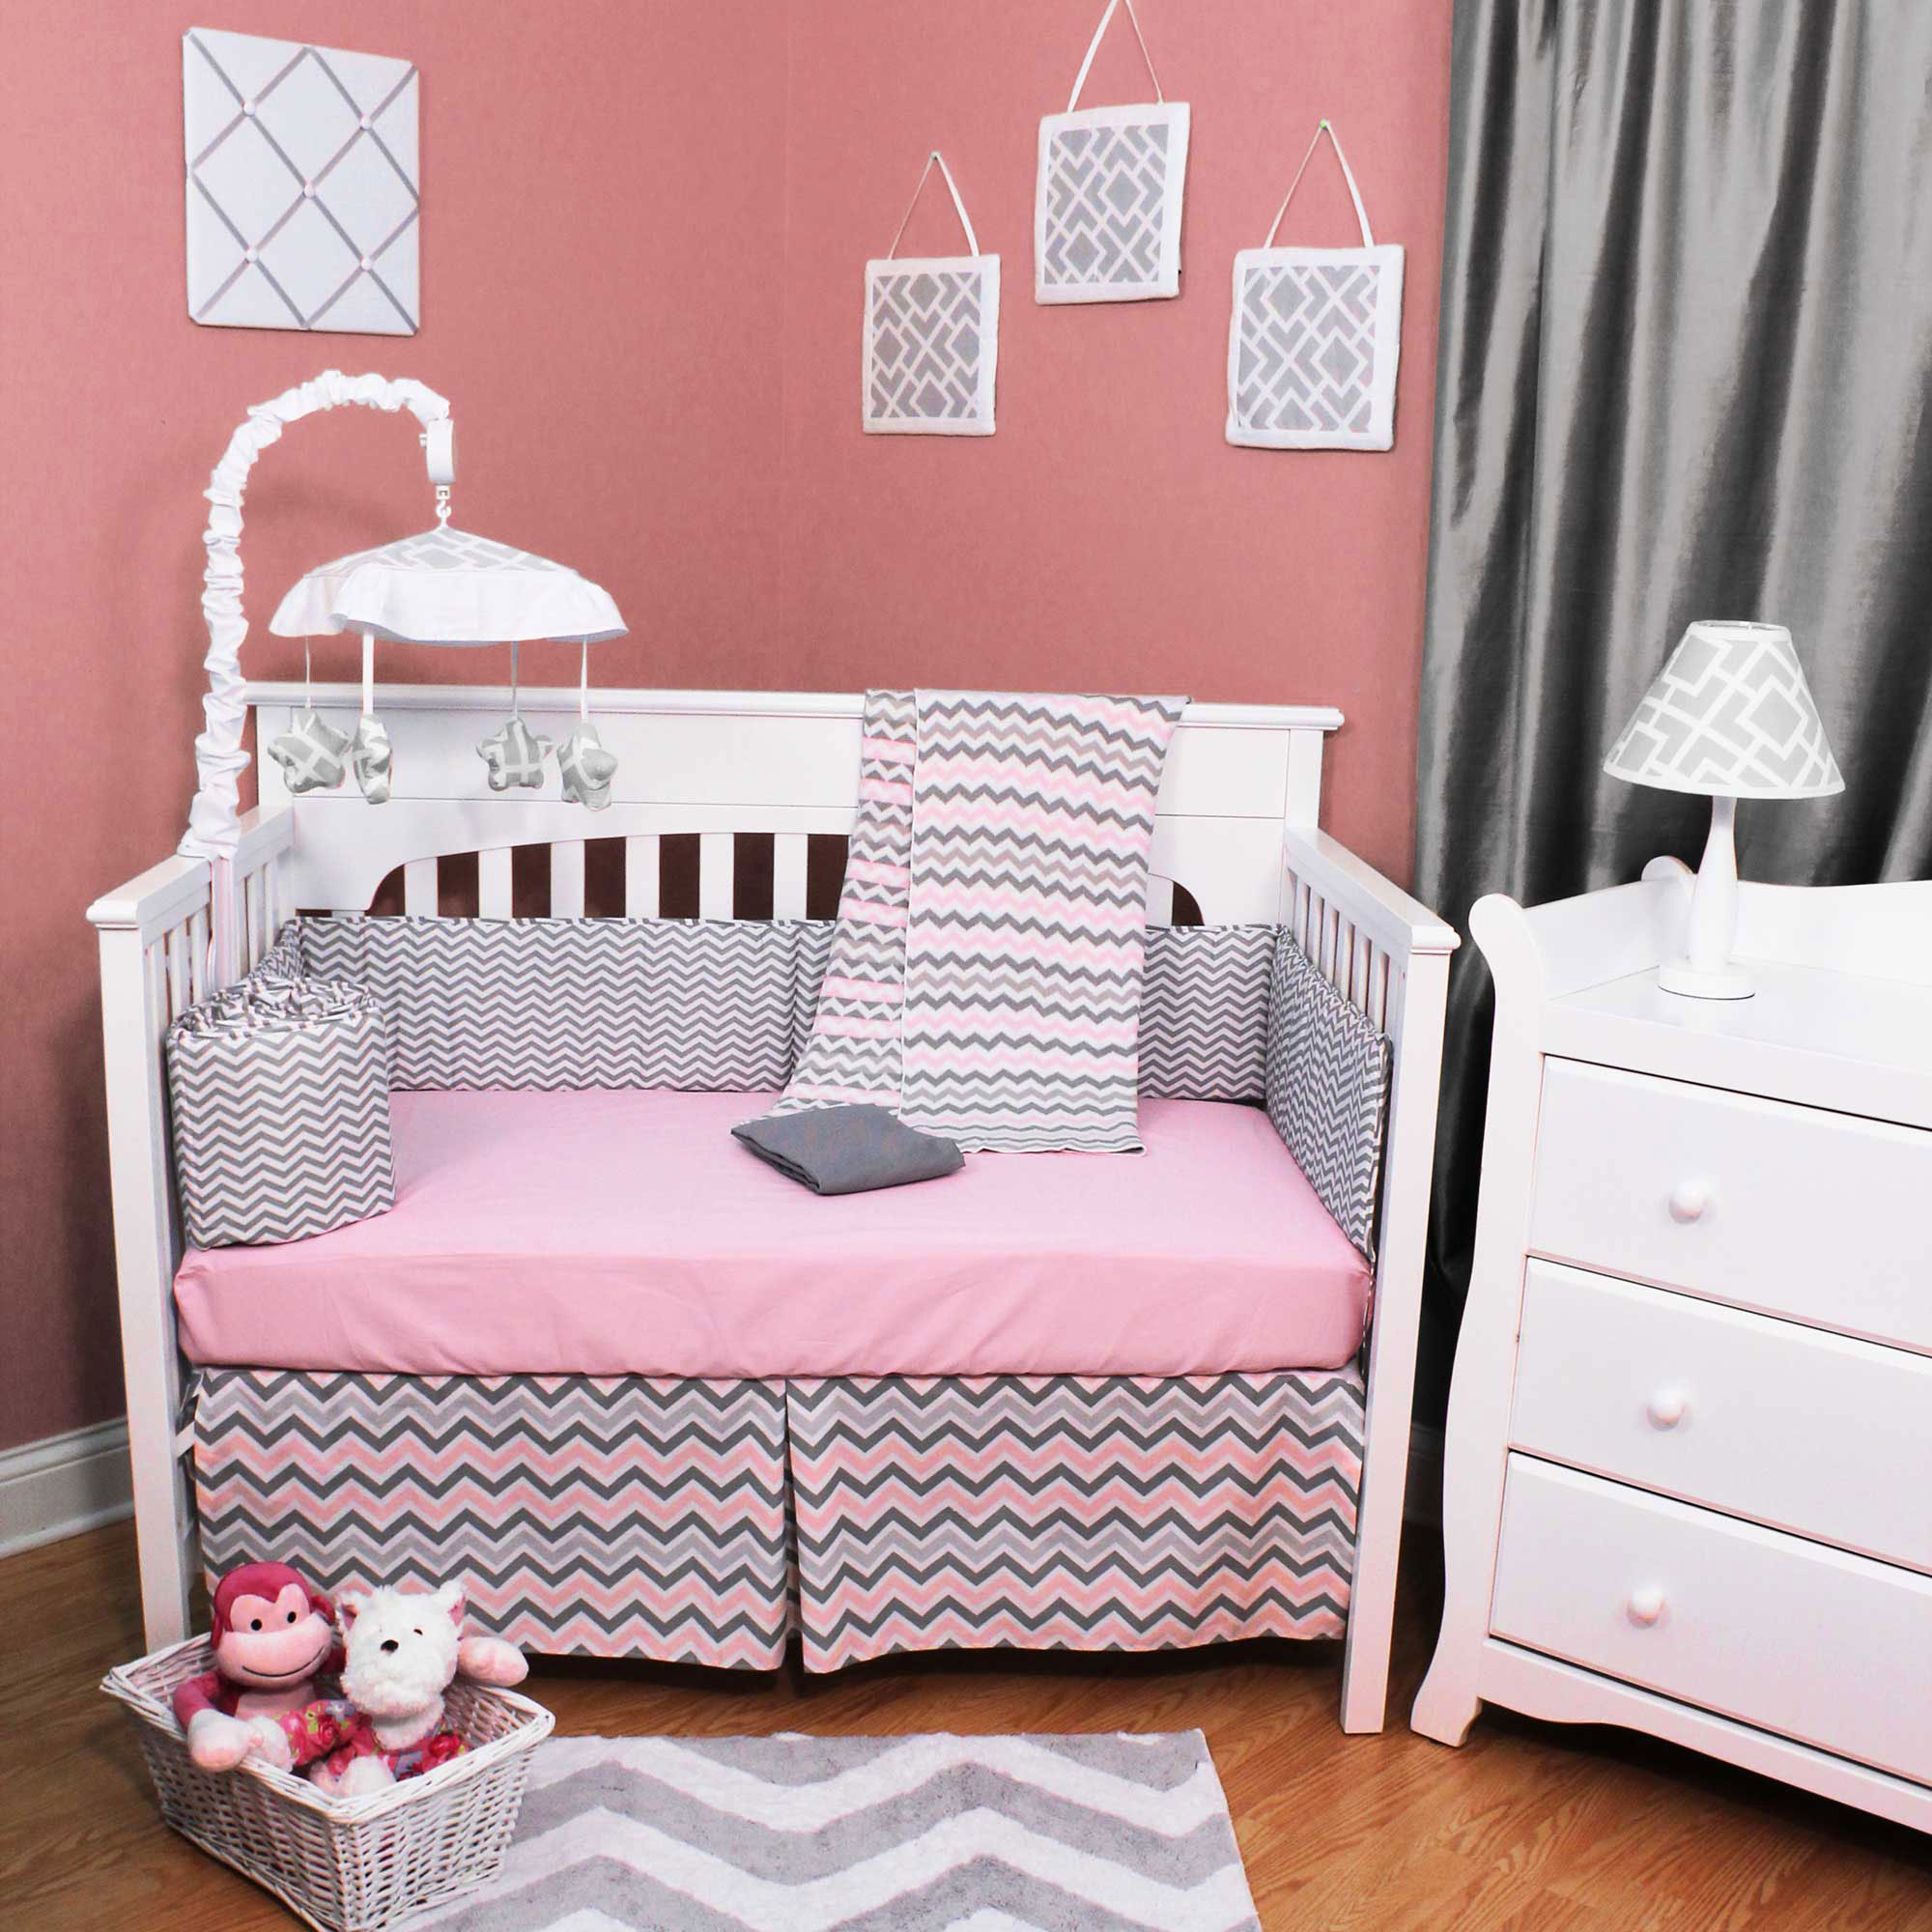 American Baby Company Crib Bedding Set - Pink and Gray Chevron - Zig Zag 4 Piece Baby Bedding Set